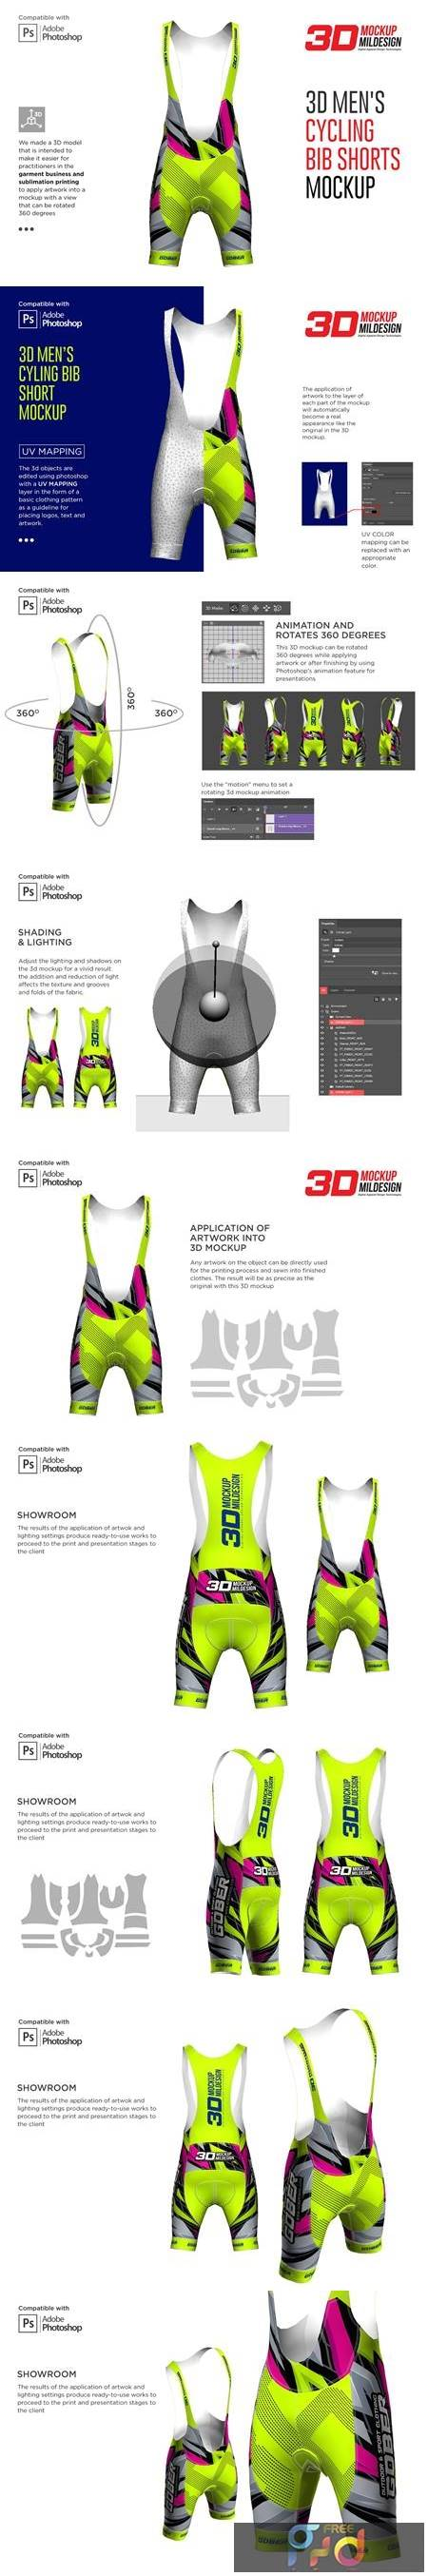 3D Mens Cycling Bib Short Mockup 5528680 1